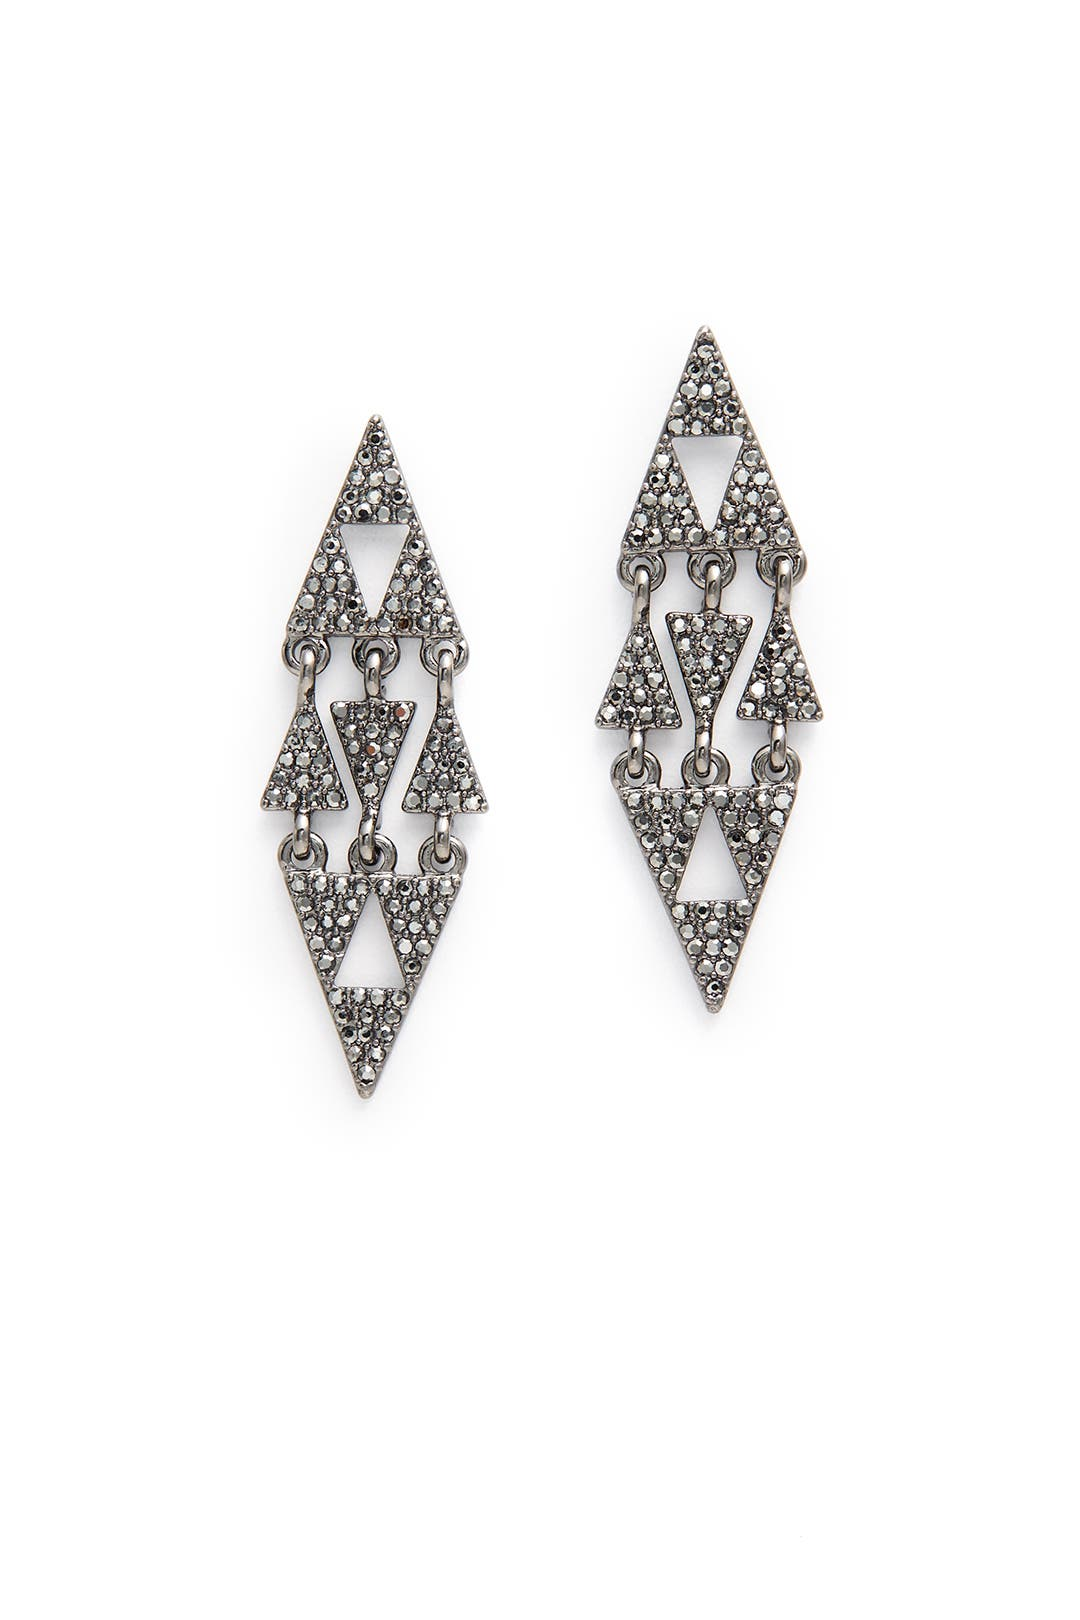 All Signs Drop Earrings By Slate & Willow Accessories For $5  Rent The  Runway